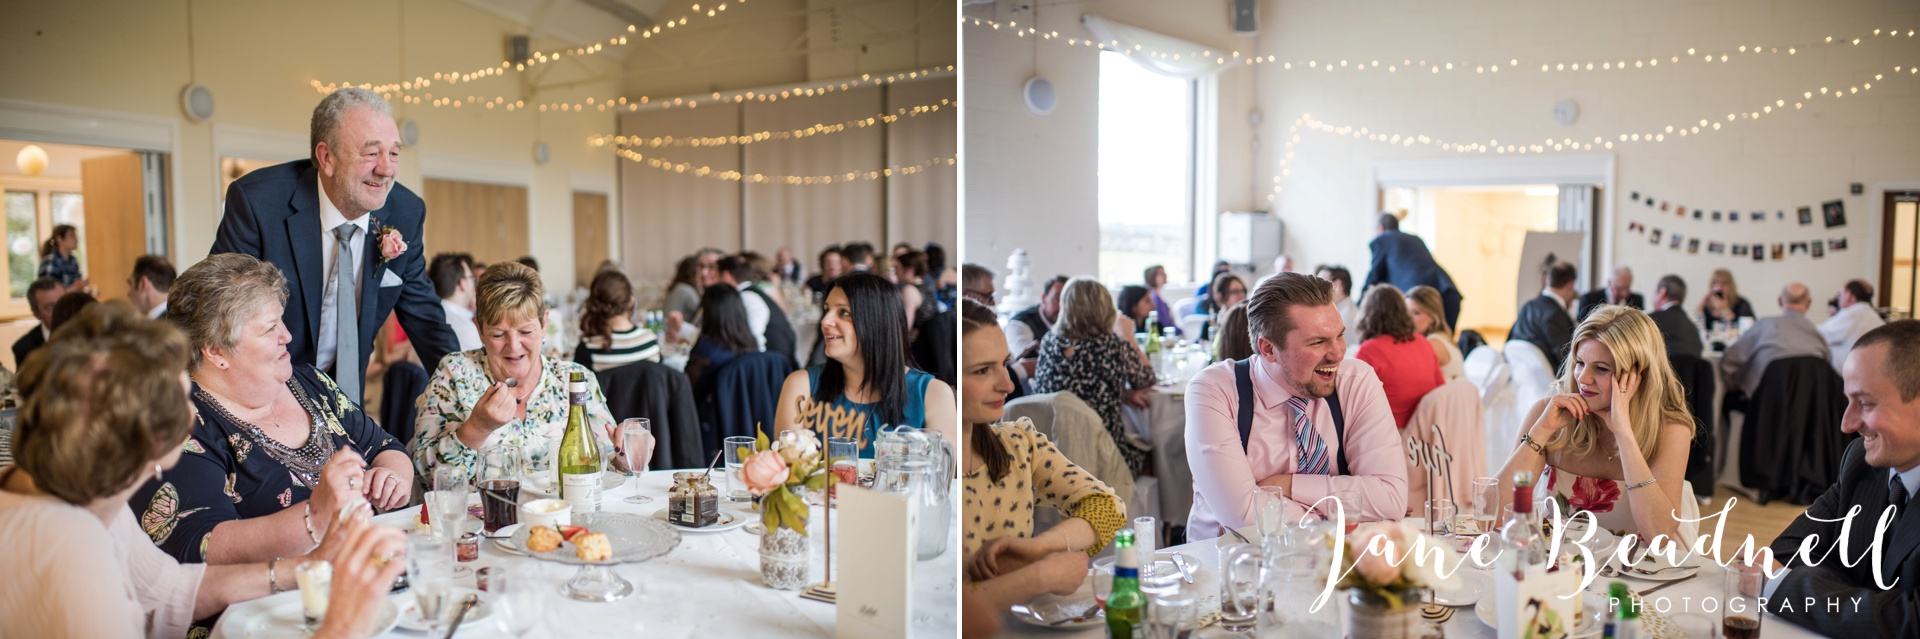 Cracoe Village Hall Wedding Photography by Jane Beadnell Photography fine art wedding photographer Yorkshire_0081